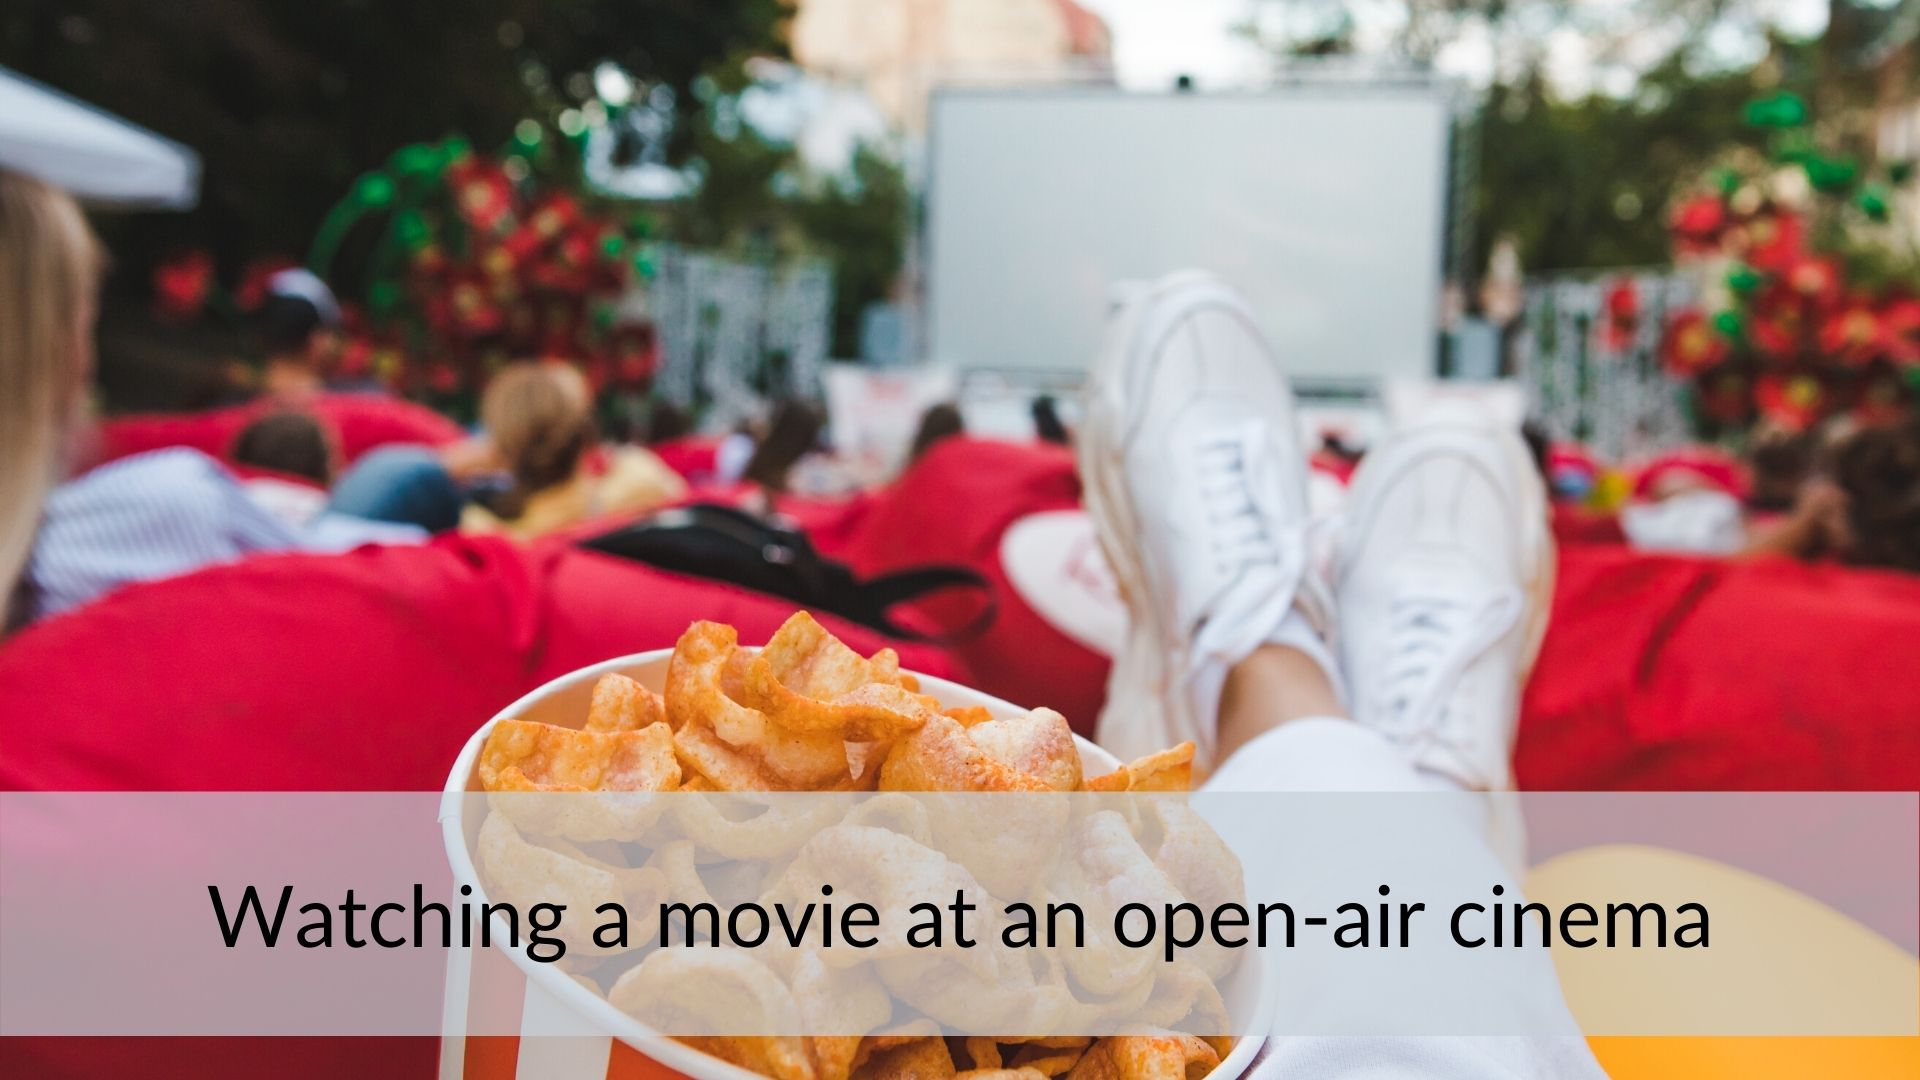 Open-air summer cinema in the UK